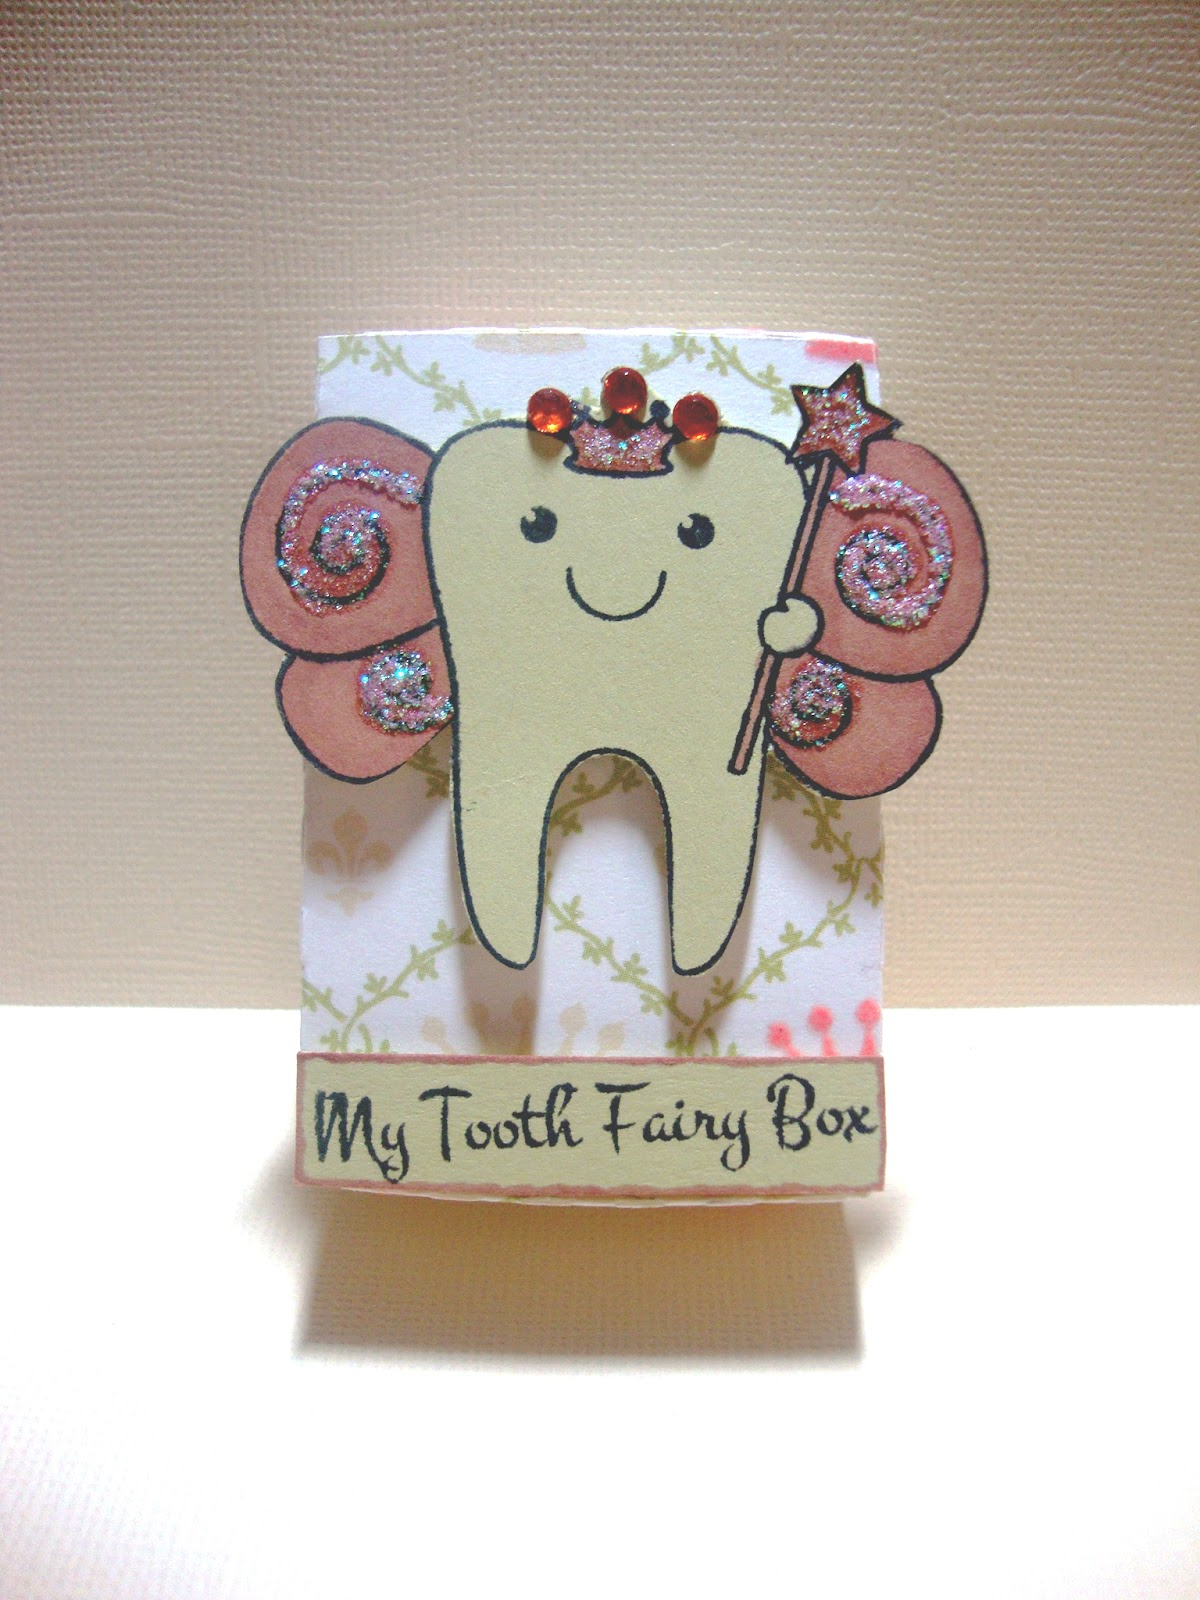 Tooth fairy box craft - Thursday June 7 2012